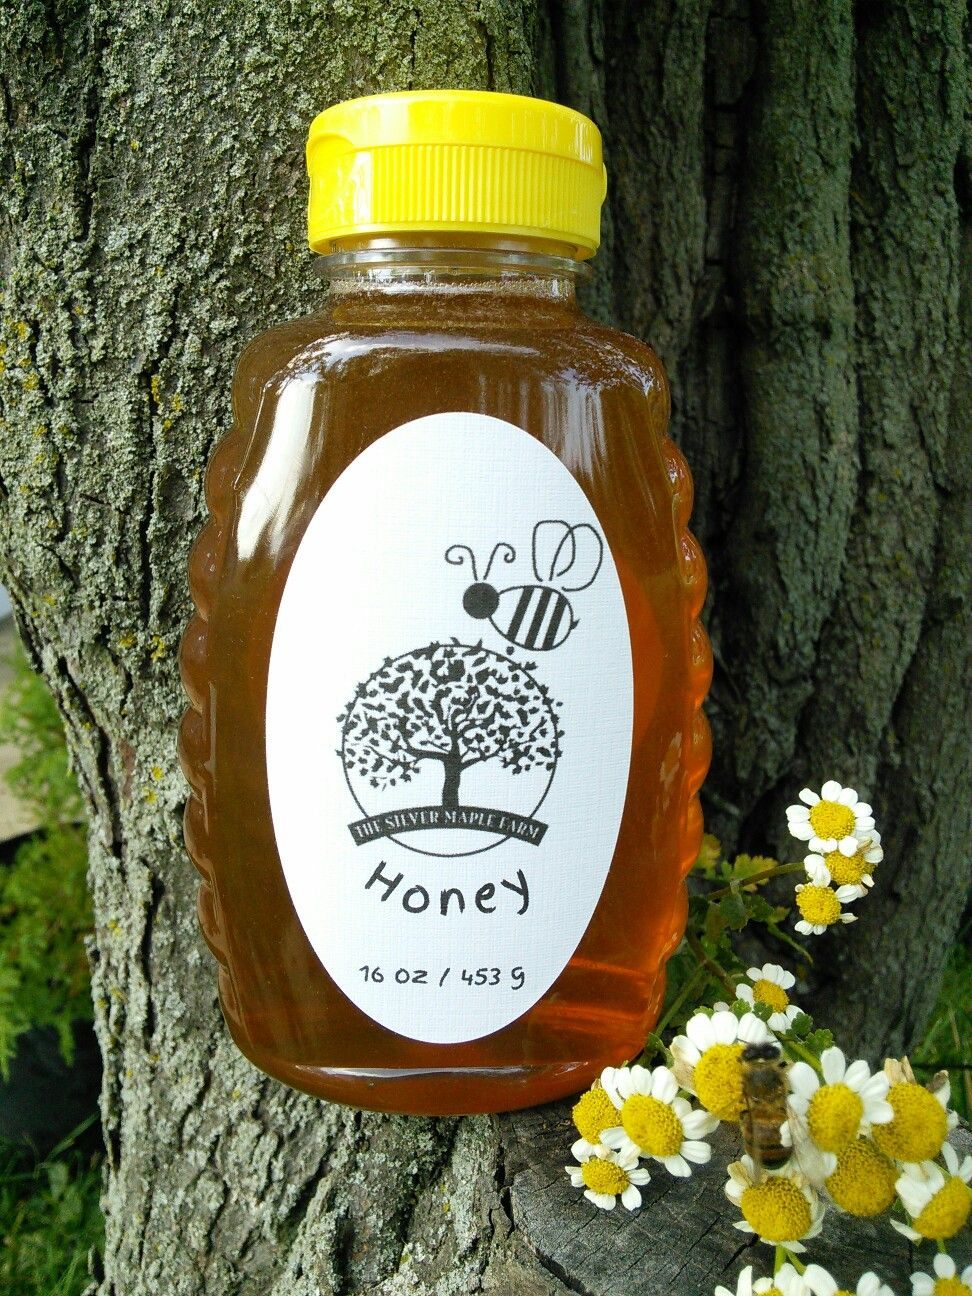 Young'un's first jar of honey. He's very excited to have it for sale at this Saturday's Chillicothe Farmers Market. Smiling & Waving, Sharon